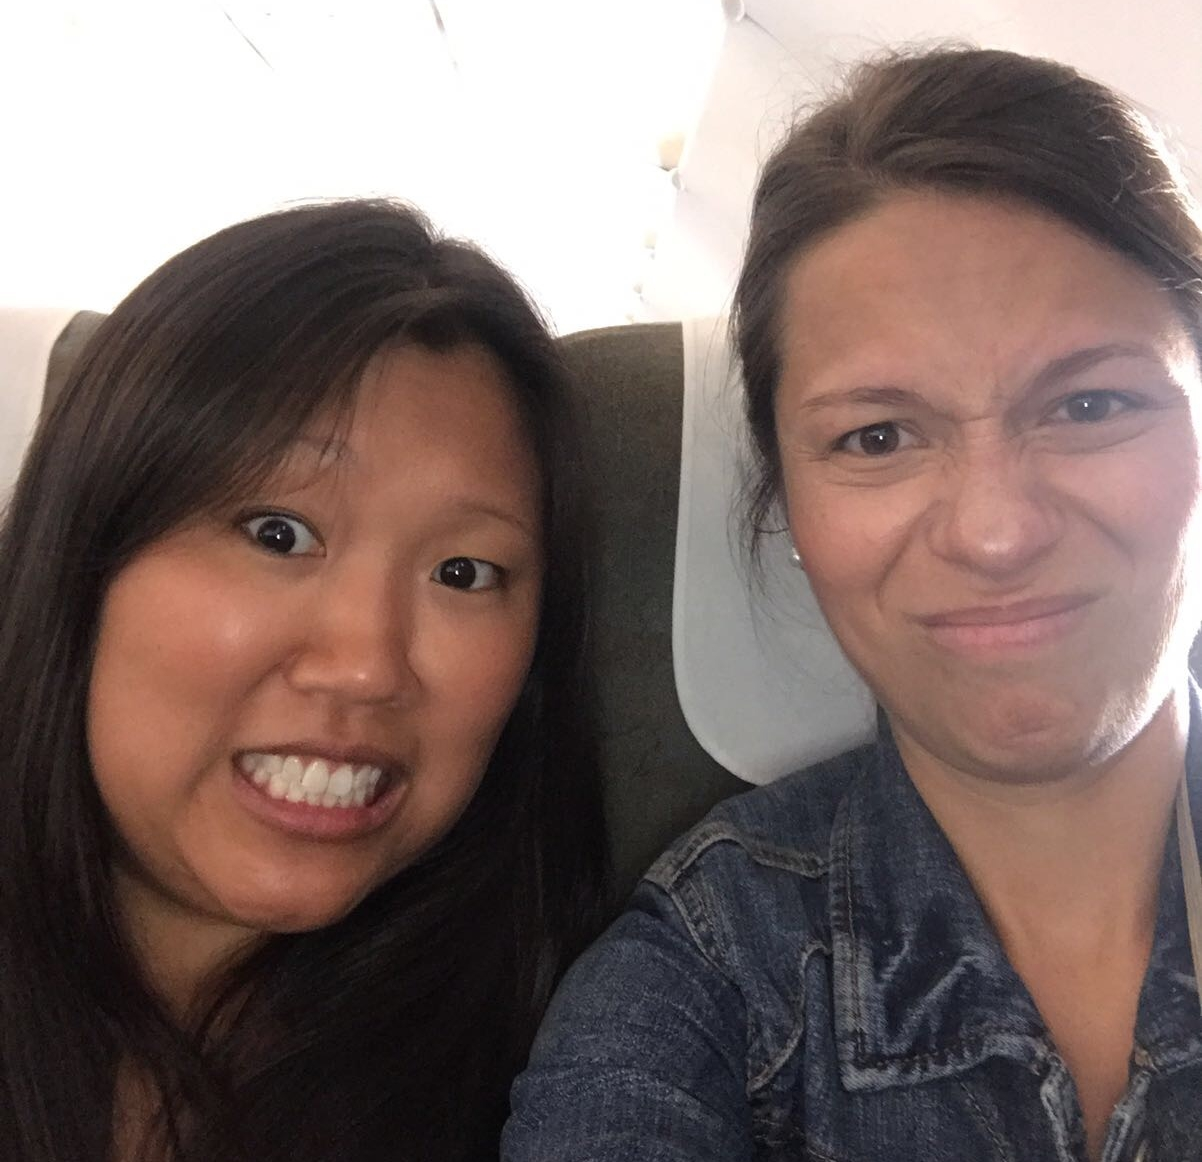 A pic Kara and Leigh Anna sent us from their flight to Saigon -- immediately after the plane's cabin had been fumigated with insecticide and the passengers behind them stuck their bare feet through the seat gap to use the armrest as a footstool